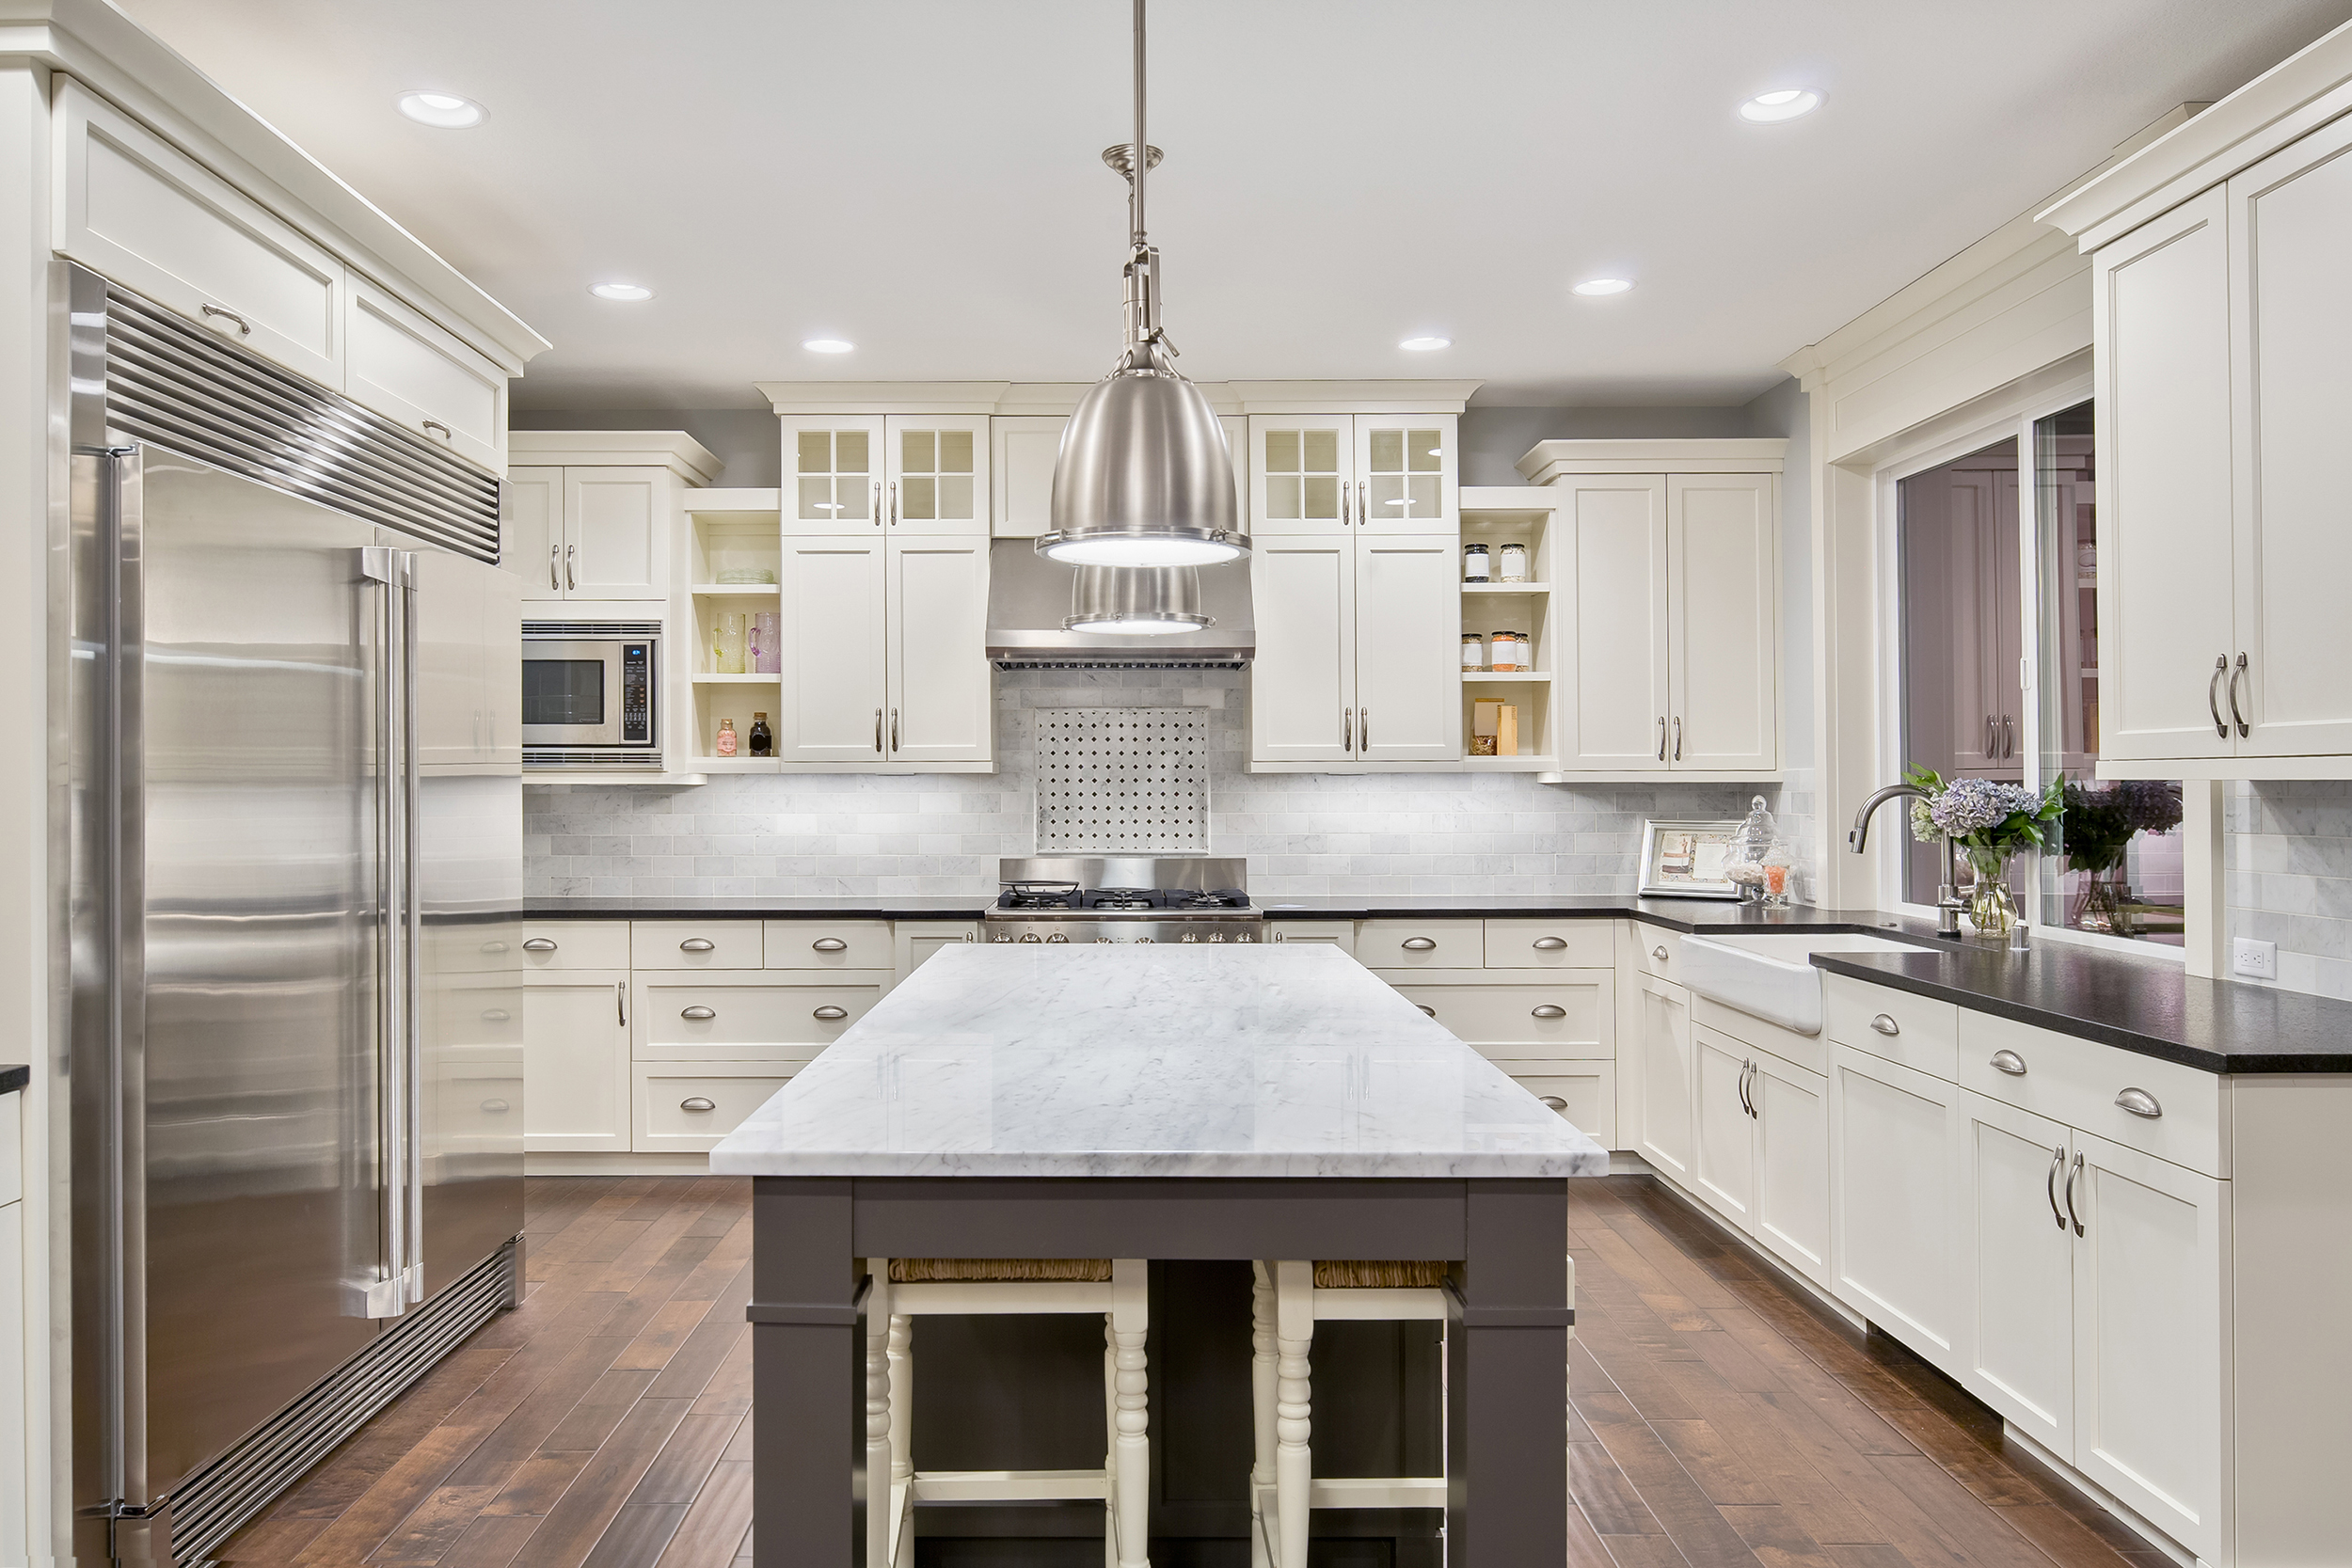 Major Kitchen Remodel   Yes Or No?   Home Performance Masters